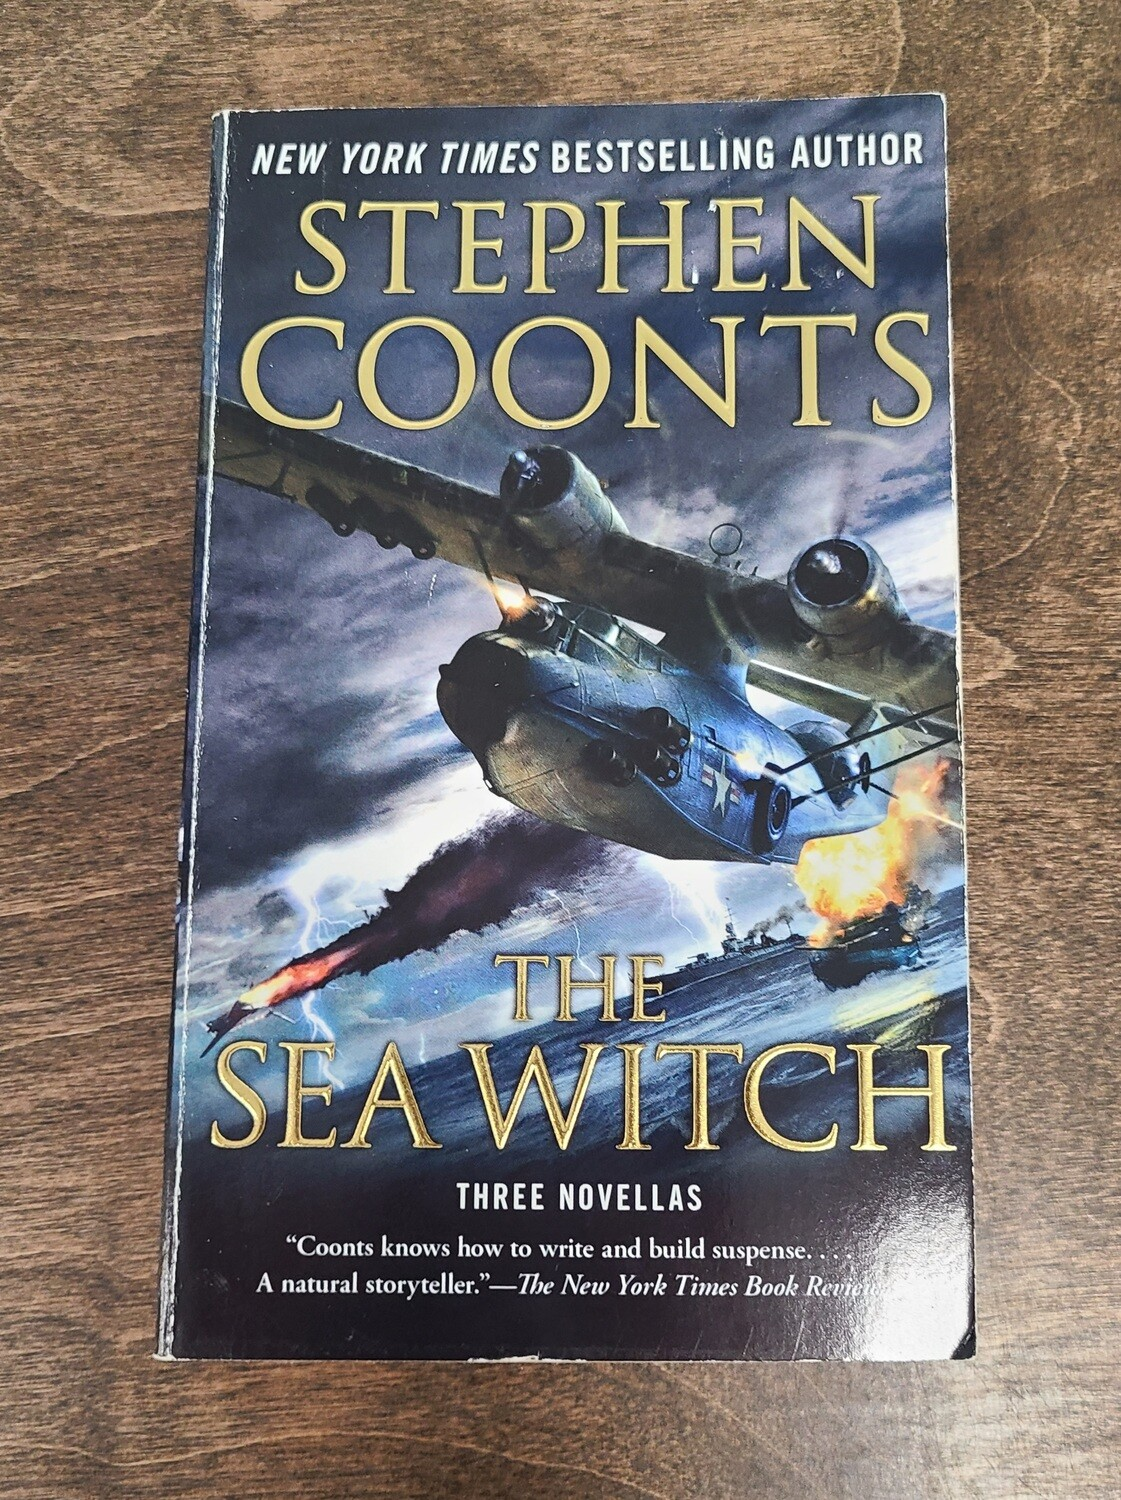 The Sea Witch by Stephen Coonts